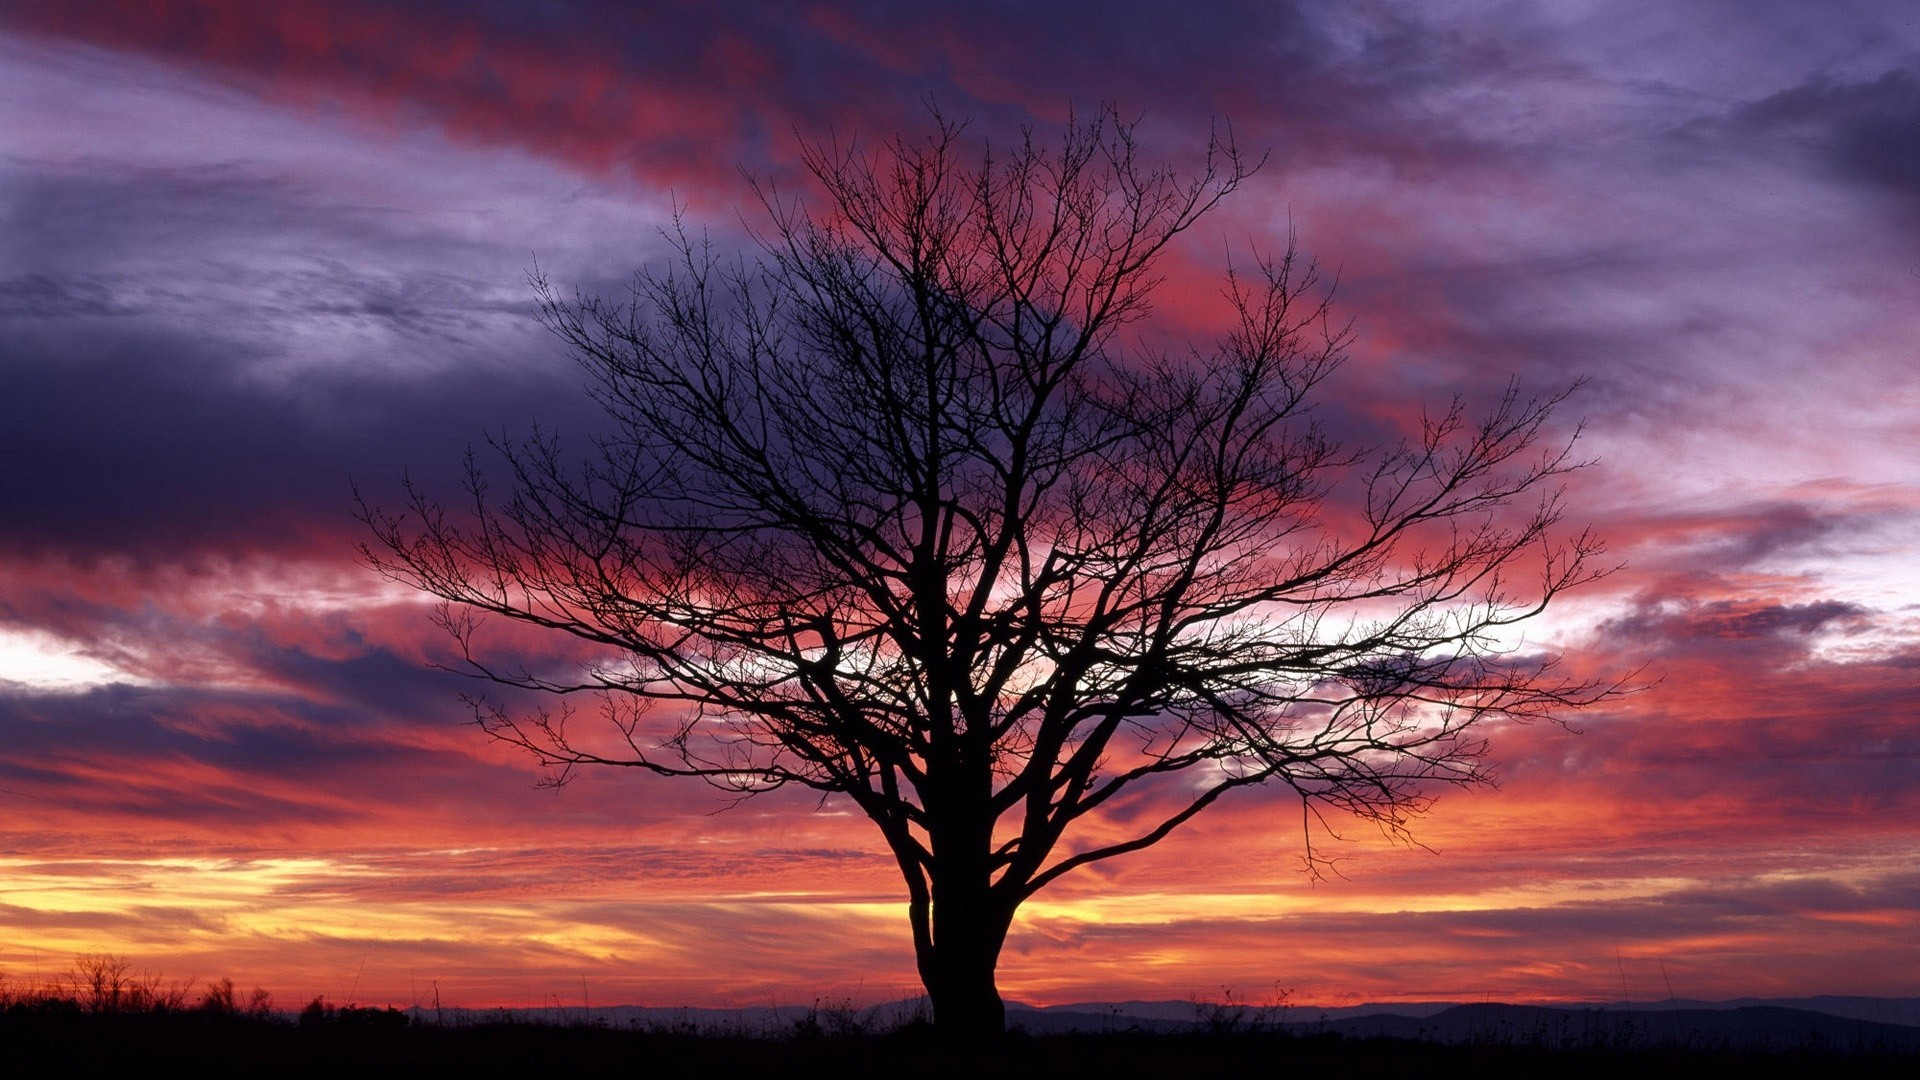 1920x1080 Red Tag - Purple Red Sunset Trees Sunsets Tree Nature Sky Picture Download  for HD 16